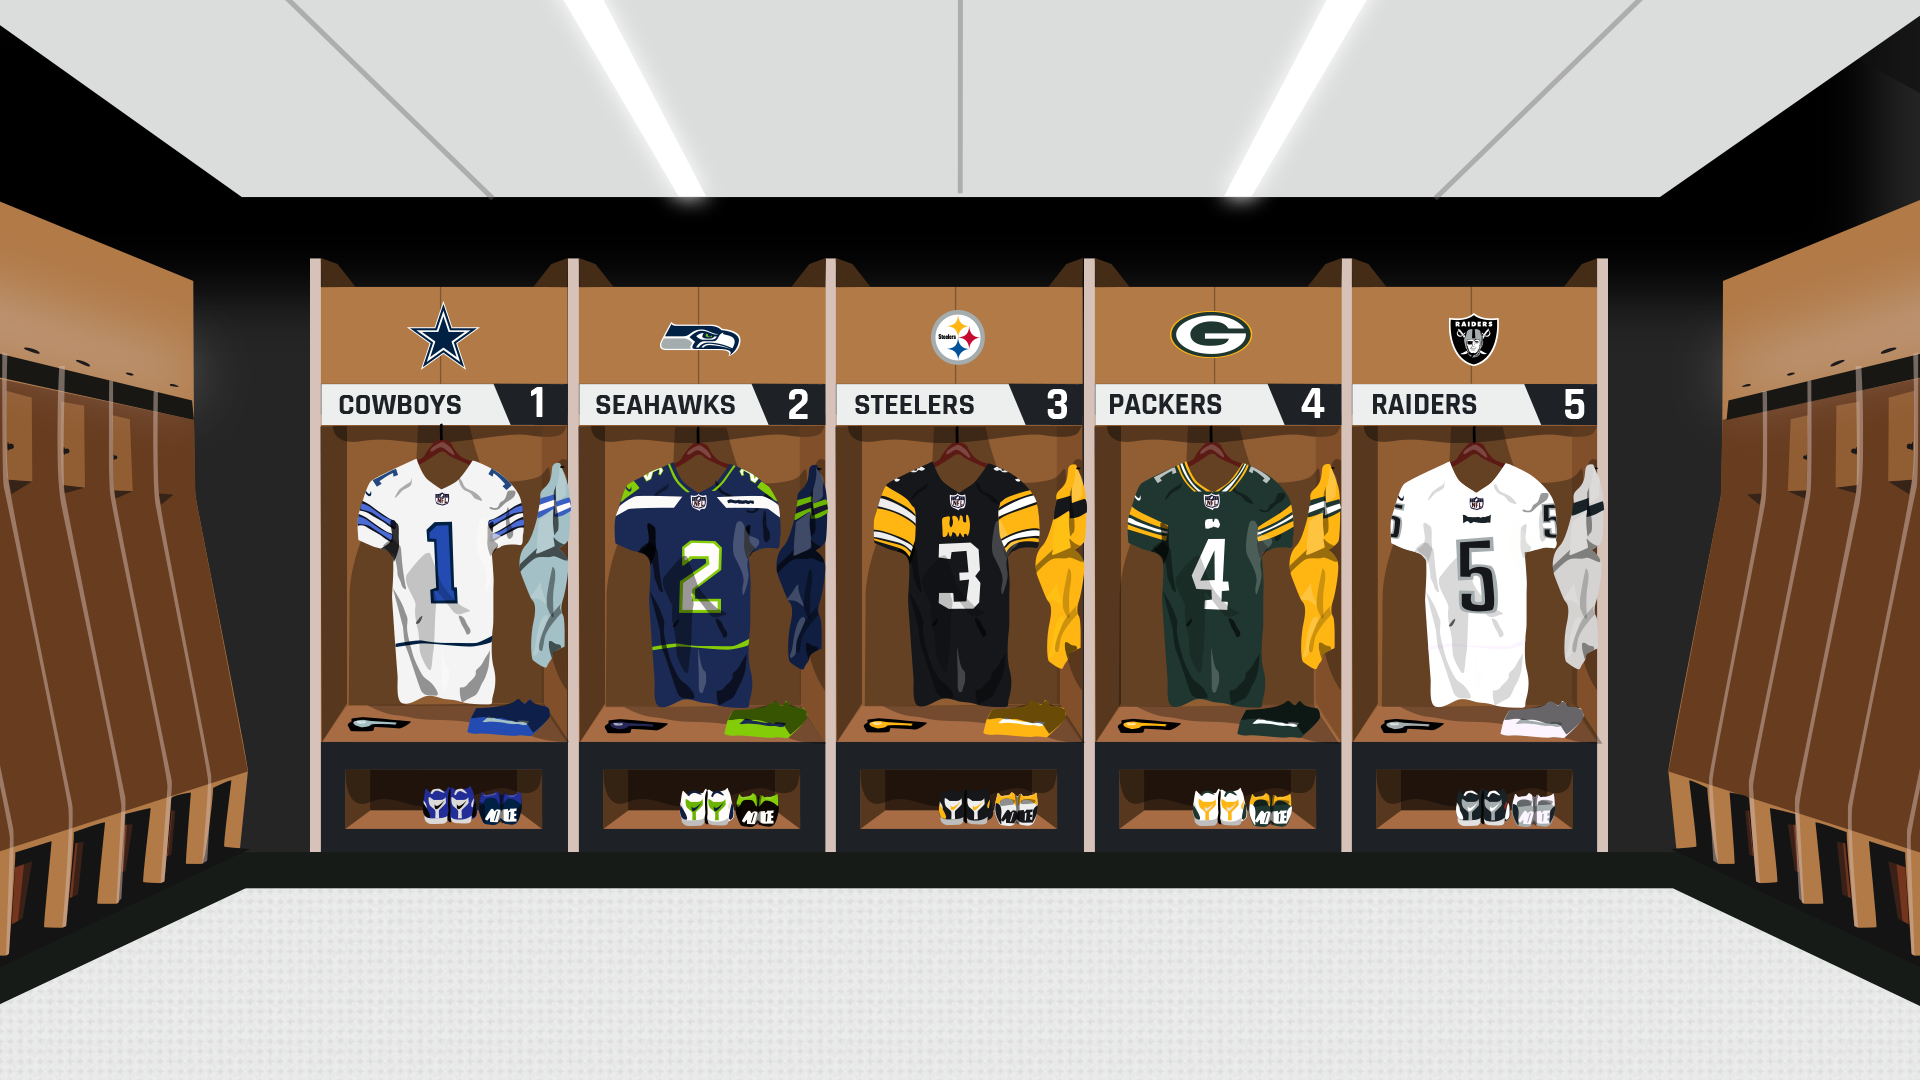 new concept 792cf a0474 NFL uniform rankings: The best and worst looks in the league ...